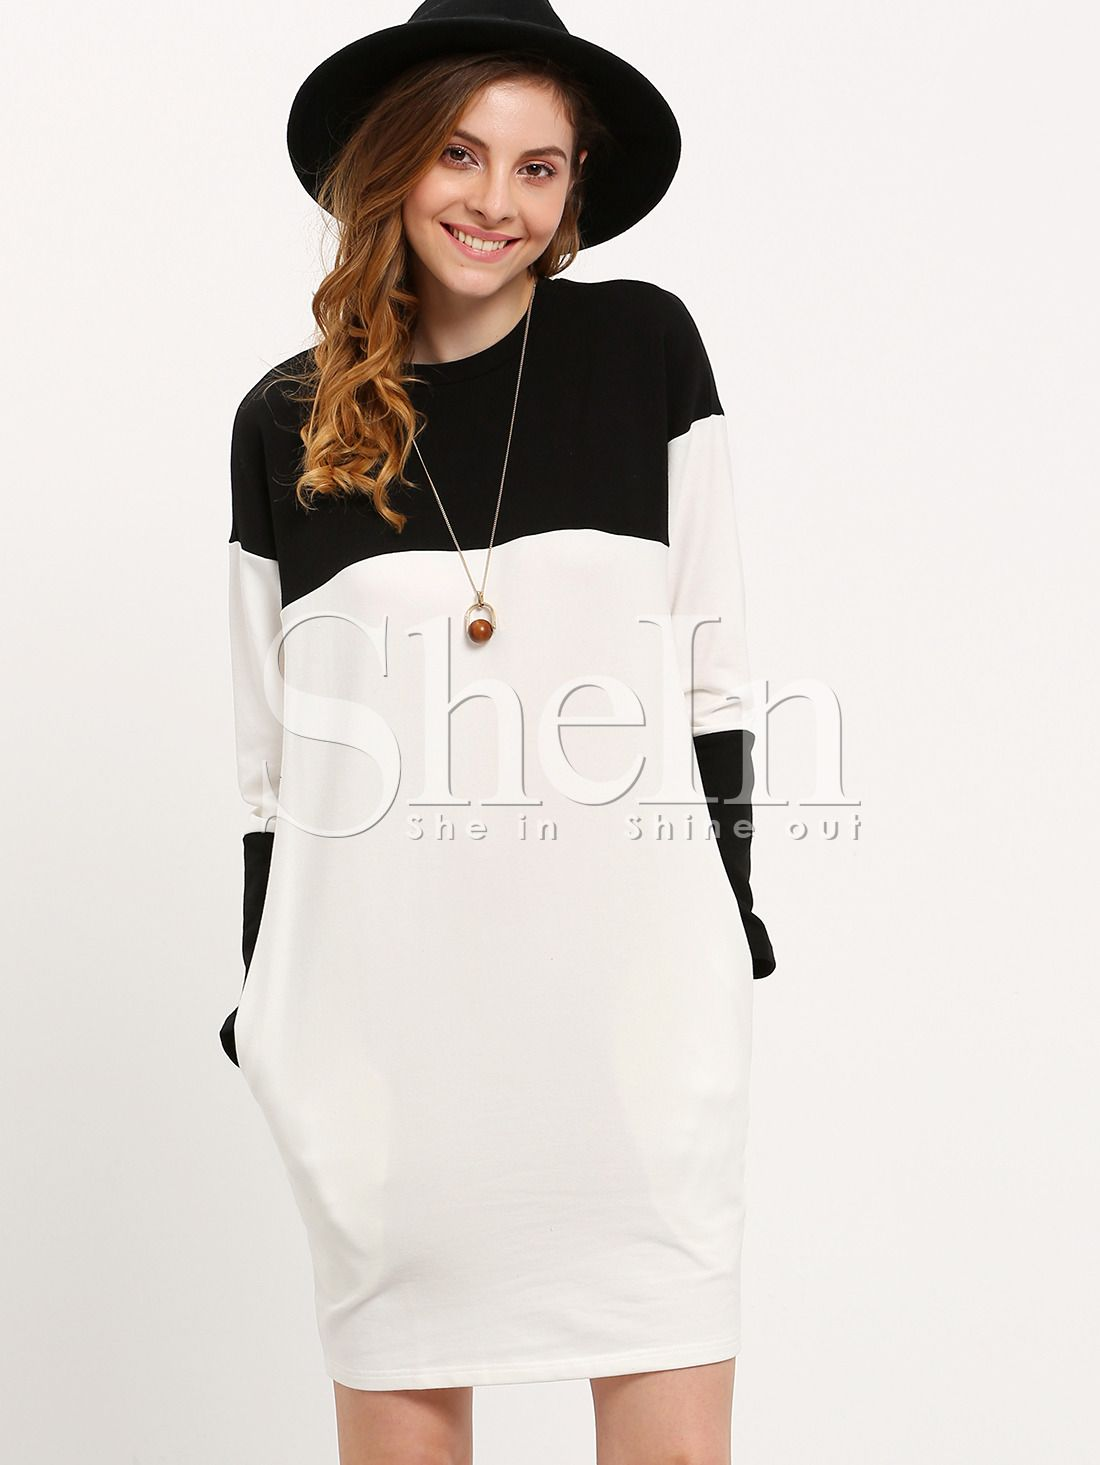 Buy it now. White Black Round Neck Color Block Dress. Black and White Casual Cotton Round Neck Three Quarter Length Sleeve Shift Short Color Block Fabric is very stretchy Fall Tshirt Dresses. , vestidoinformal, casual, camiseta, playeros, informales, túnica, estilocamiseta, camisola, vestidodealgodón, vestidosdealgodón, verano, informal, playa, playero, capa, capas, vestidobabydoll, camisole, túnica, shift, pleat, pleated, drape, t-shape, daisy, foldedshoulder, summer, loosefit, tunictop,...